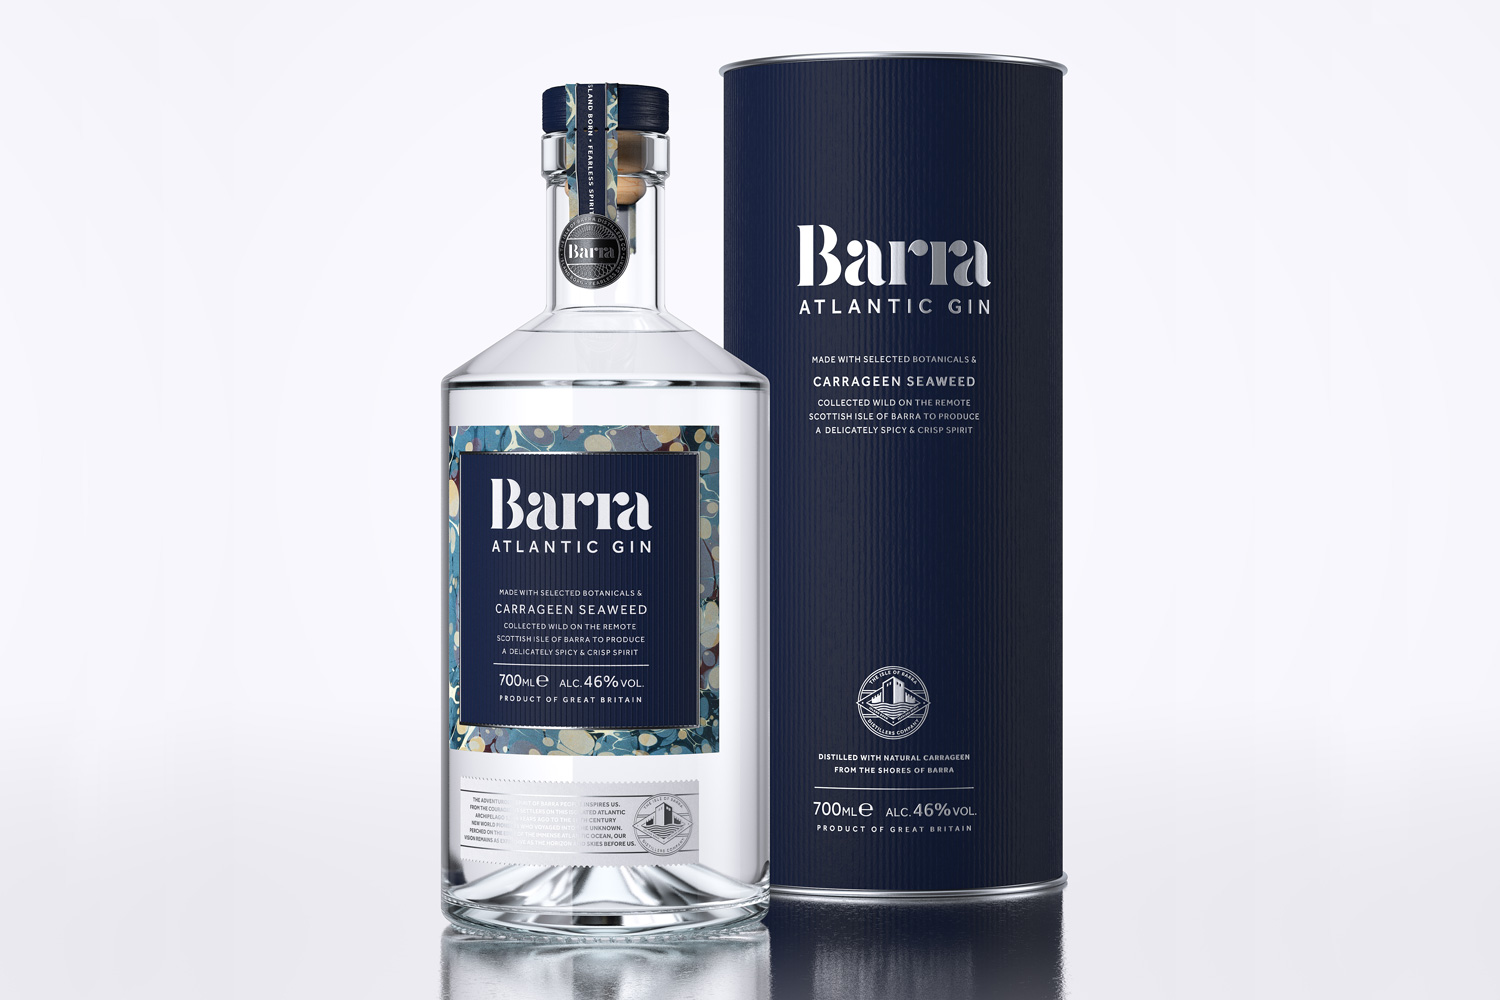 Progress Packaging Barra Gin Lovers Bespoke Spirit Liquor Drinks Brand Creative High Street Tube